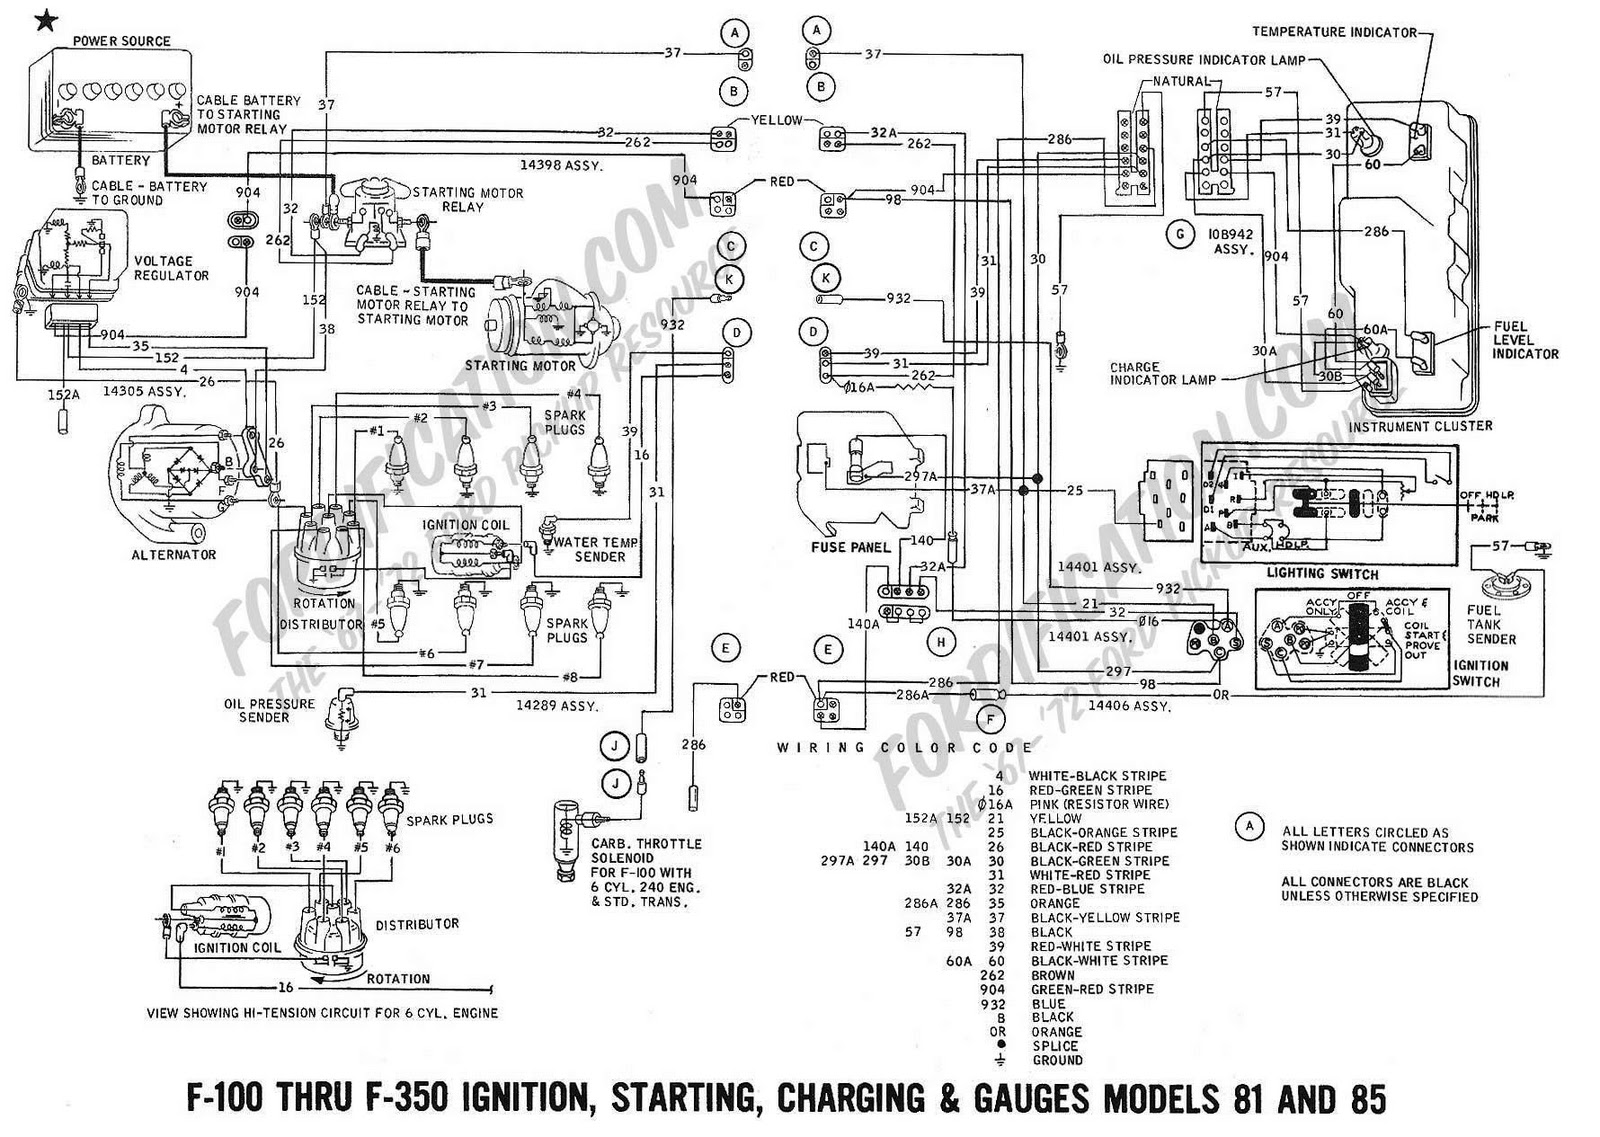 ford f350 wiring diagram 1969 ford f100 f350 ignition starting charging and gauges 1969 ford f100 f350 ignition starting charging